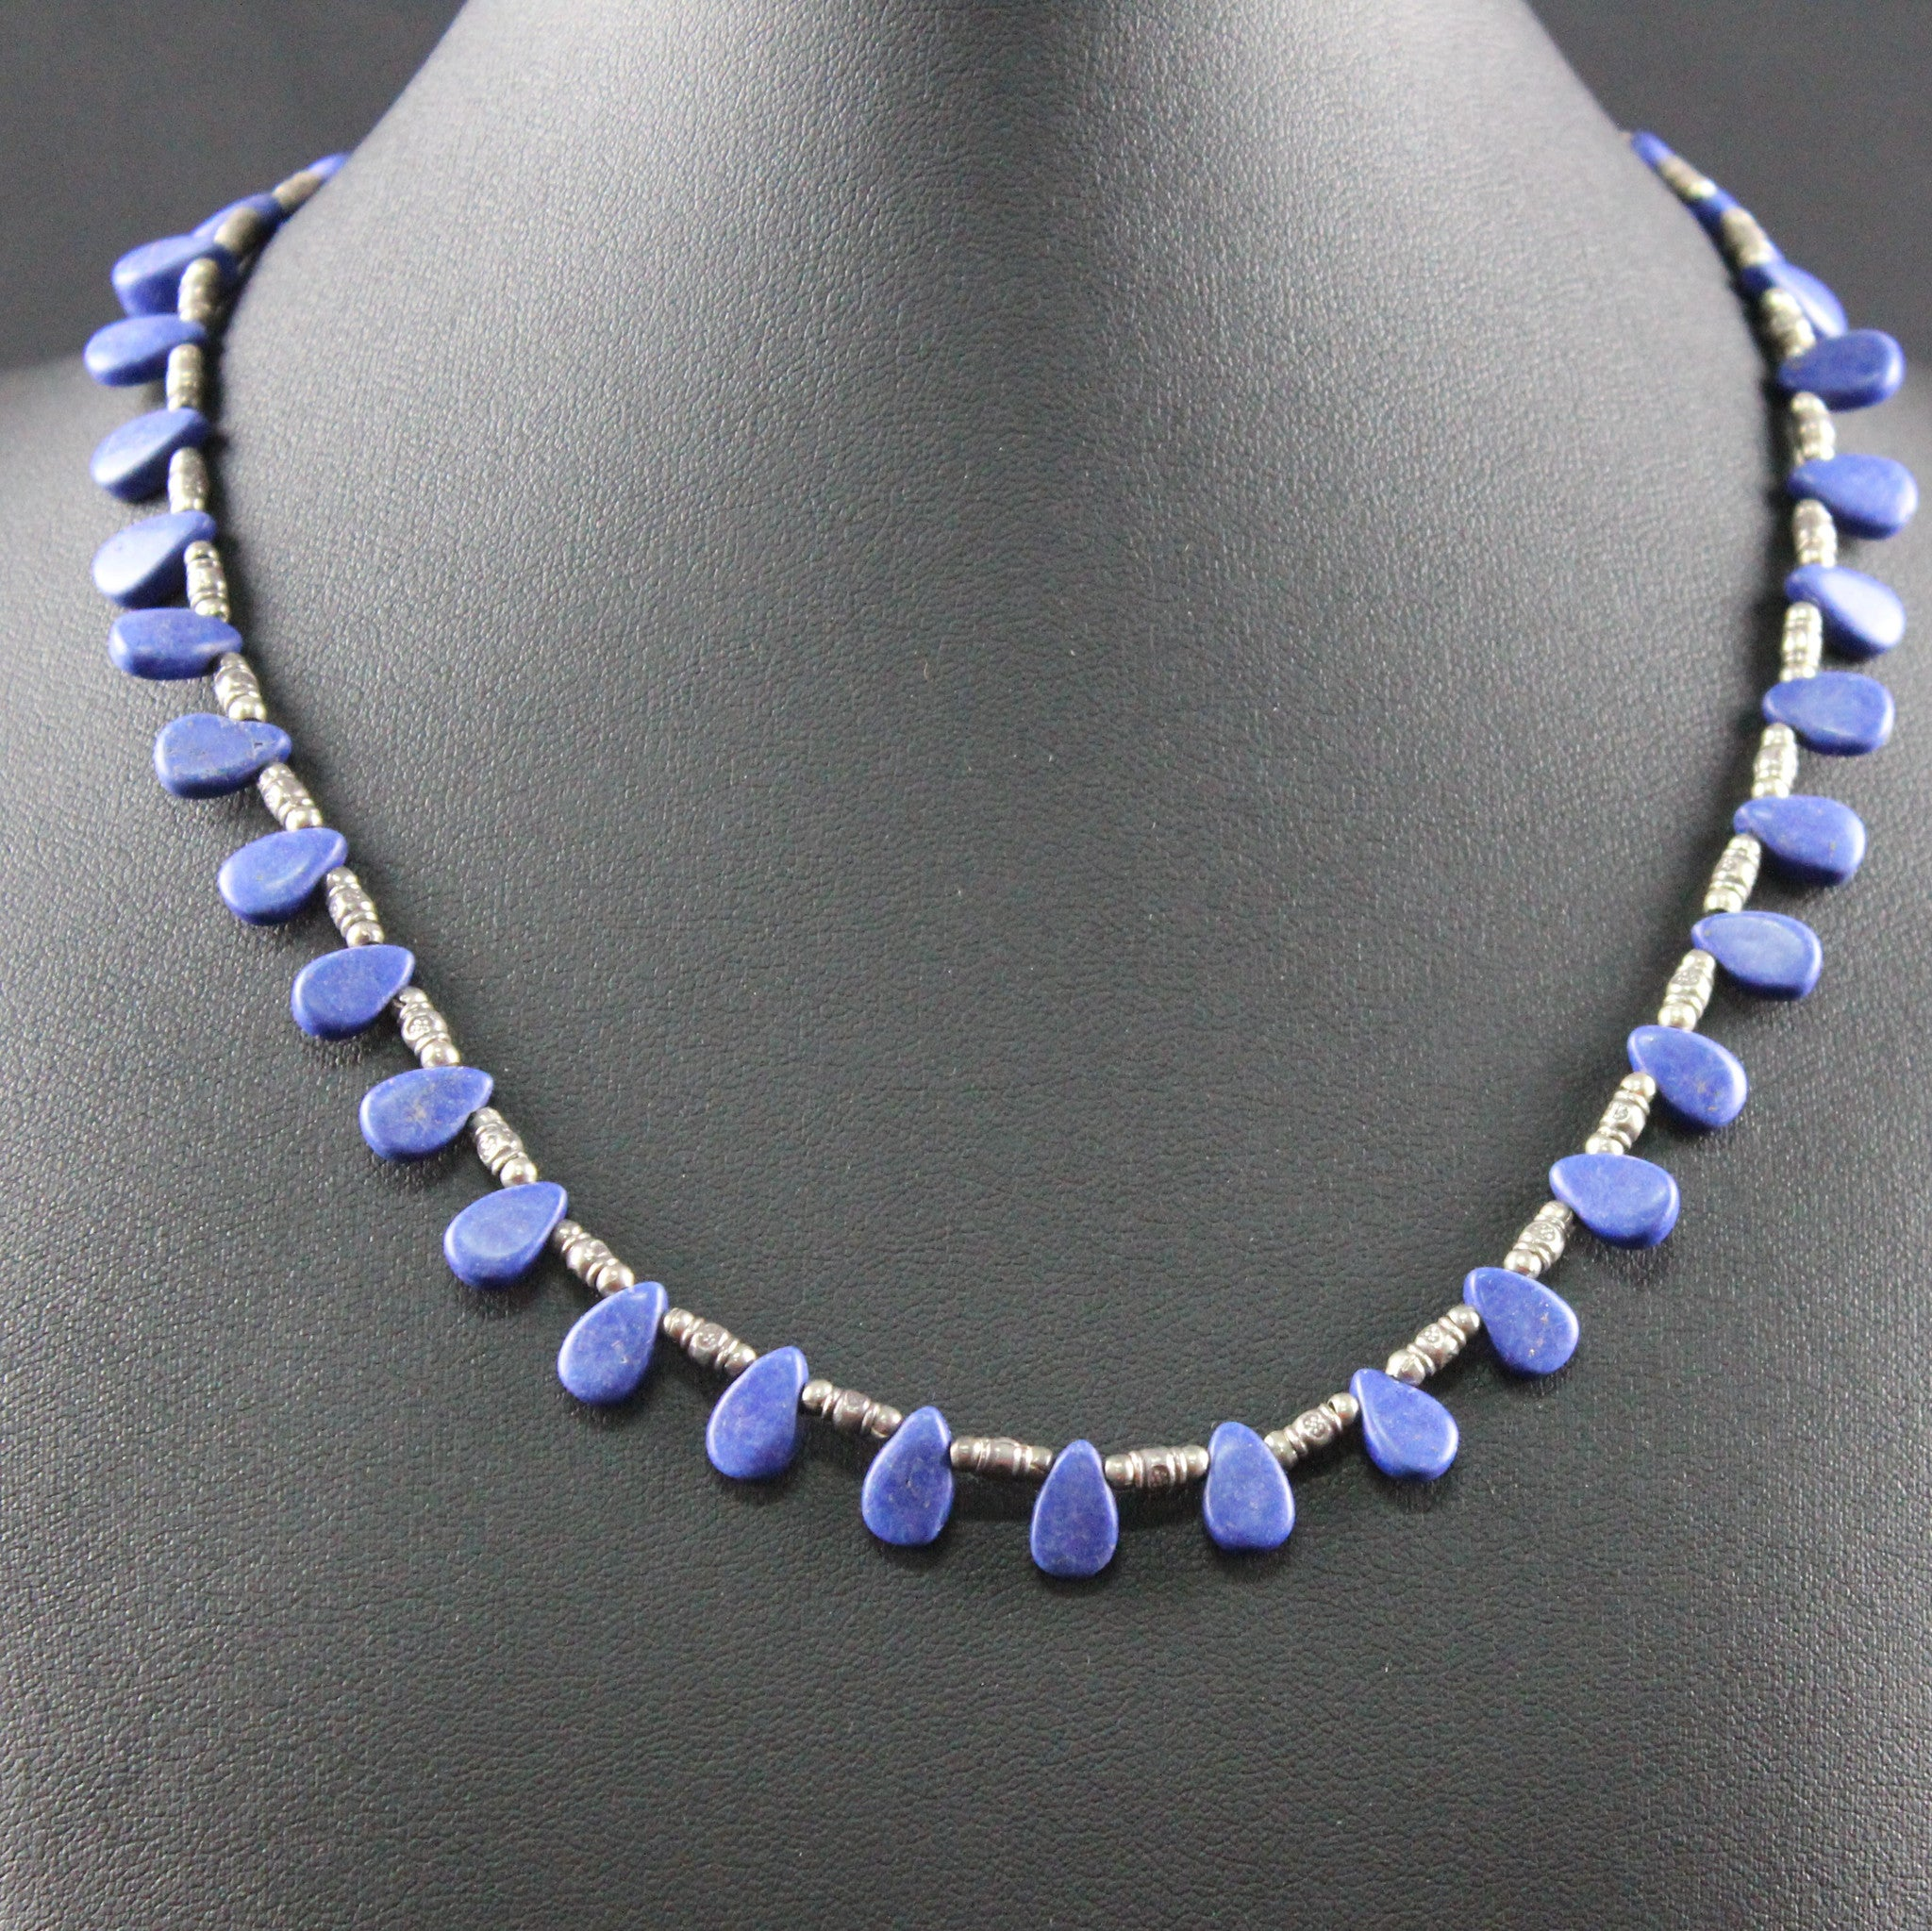 Susan M - Lapis Lazuli and silver Necklace